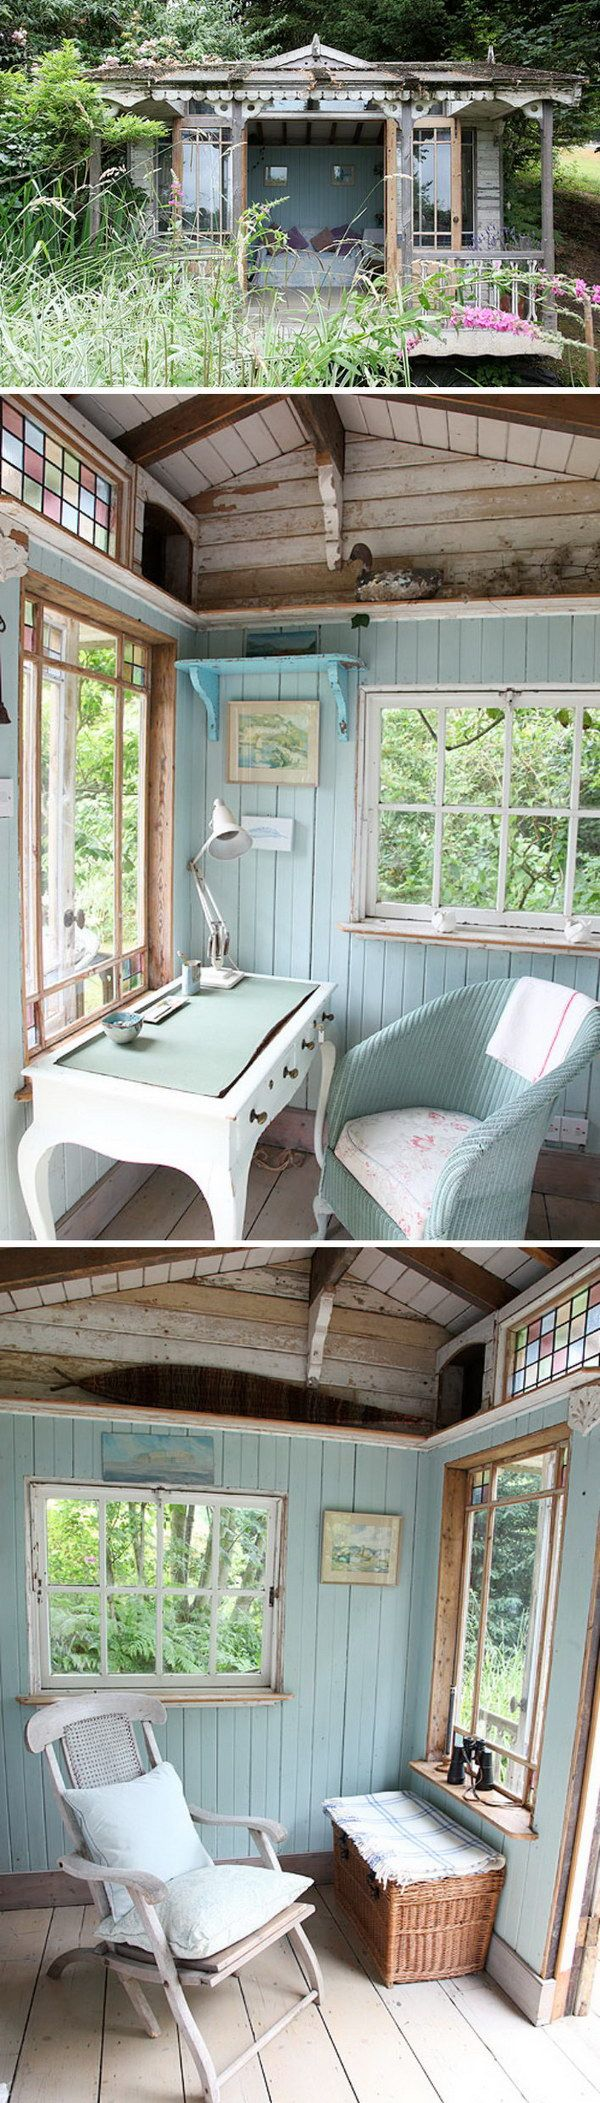 ^ 1000+ ideas about Shed Houses on Pinterest ontemporary house ...